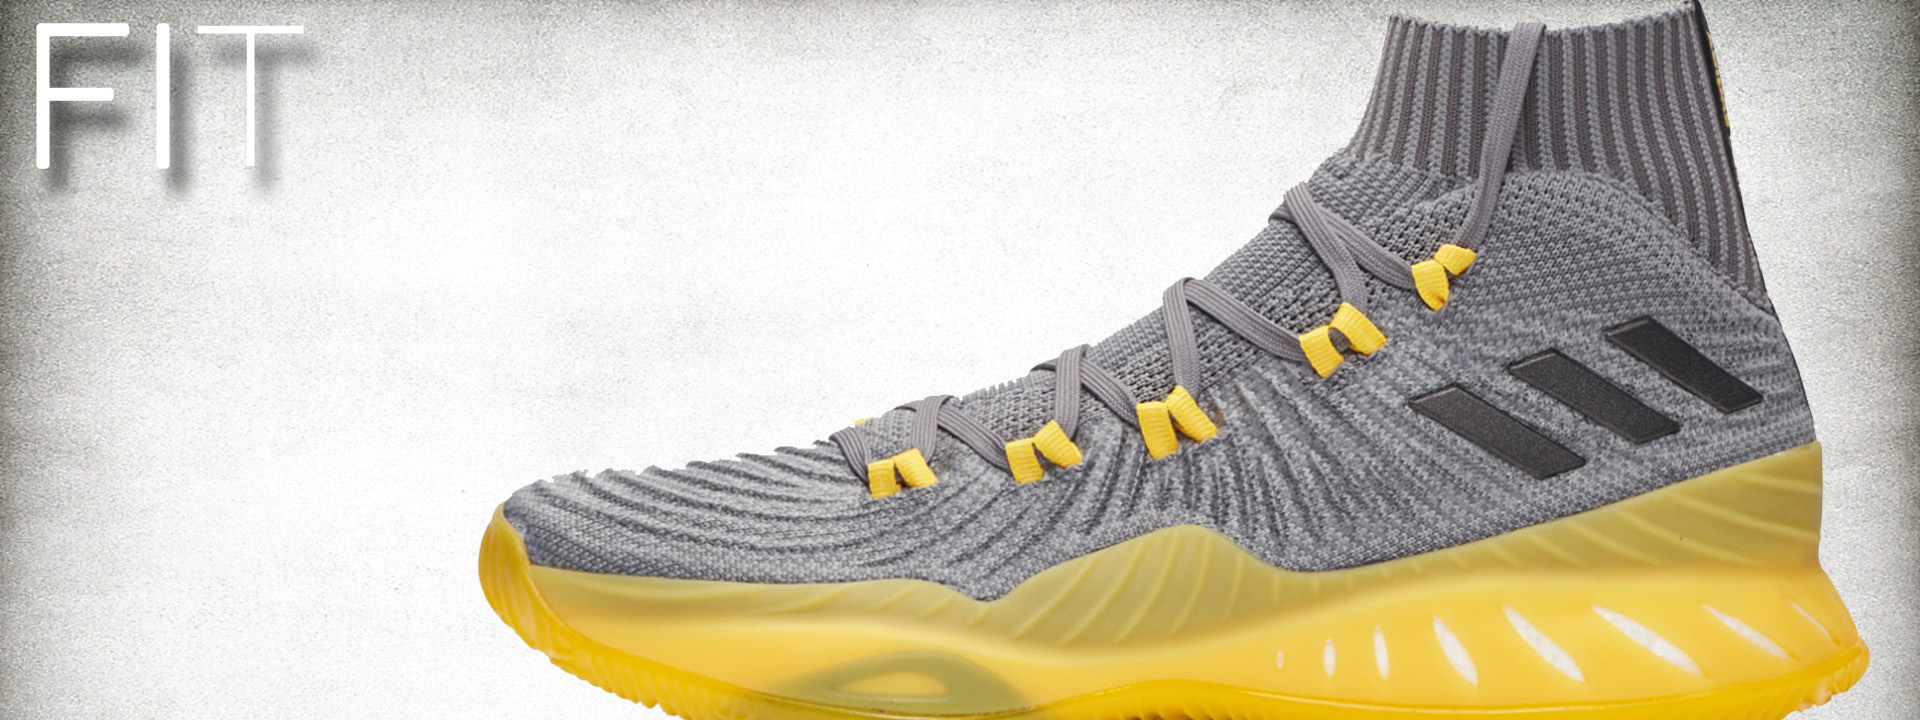 adidas crazy explosive 2017 primeknit performance review fit